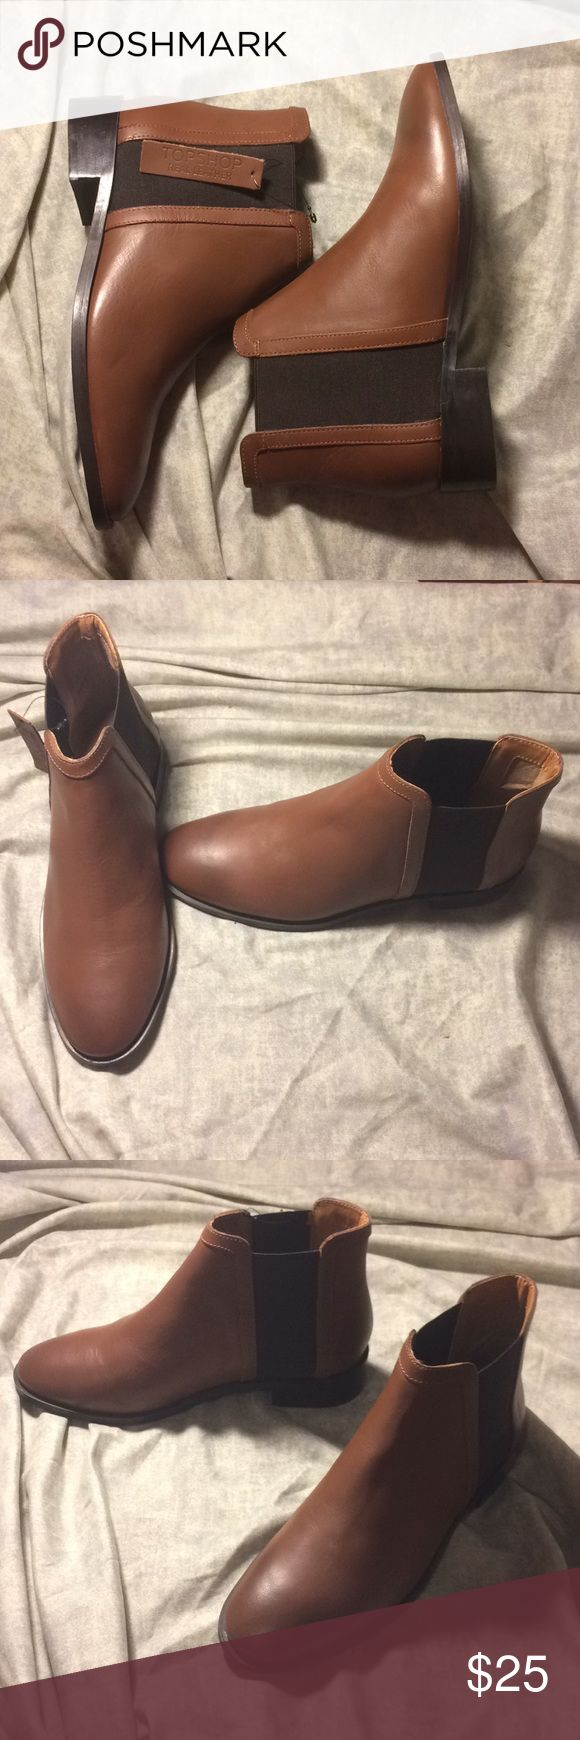 """(New) Topshop   Brown Leather Chelsea Boots Brown leather Chelsea boots by Topshop. Heel approx 1.5"""". Elastic at opening so it's easier to get your feet in. Size 7.5, though I'd say it fits a 7 more. Brand new and never worn!  Let me know if you have any questions. Topshop Shoes Ankle Boots & Booties"""